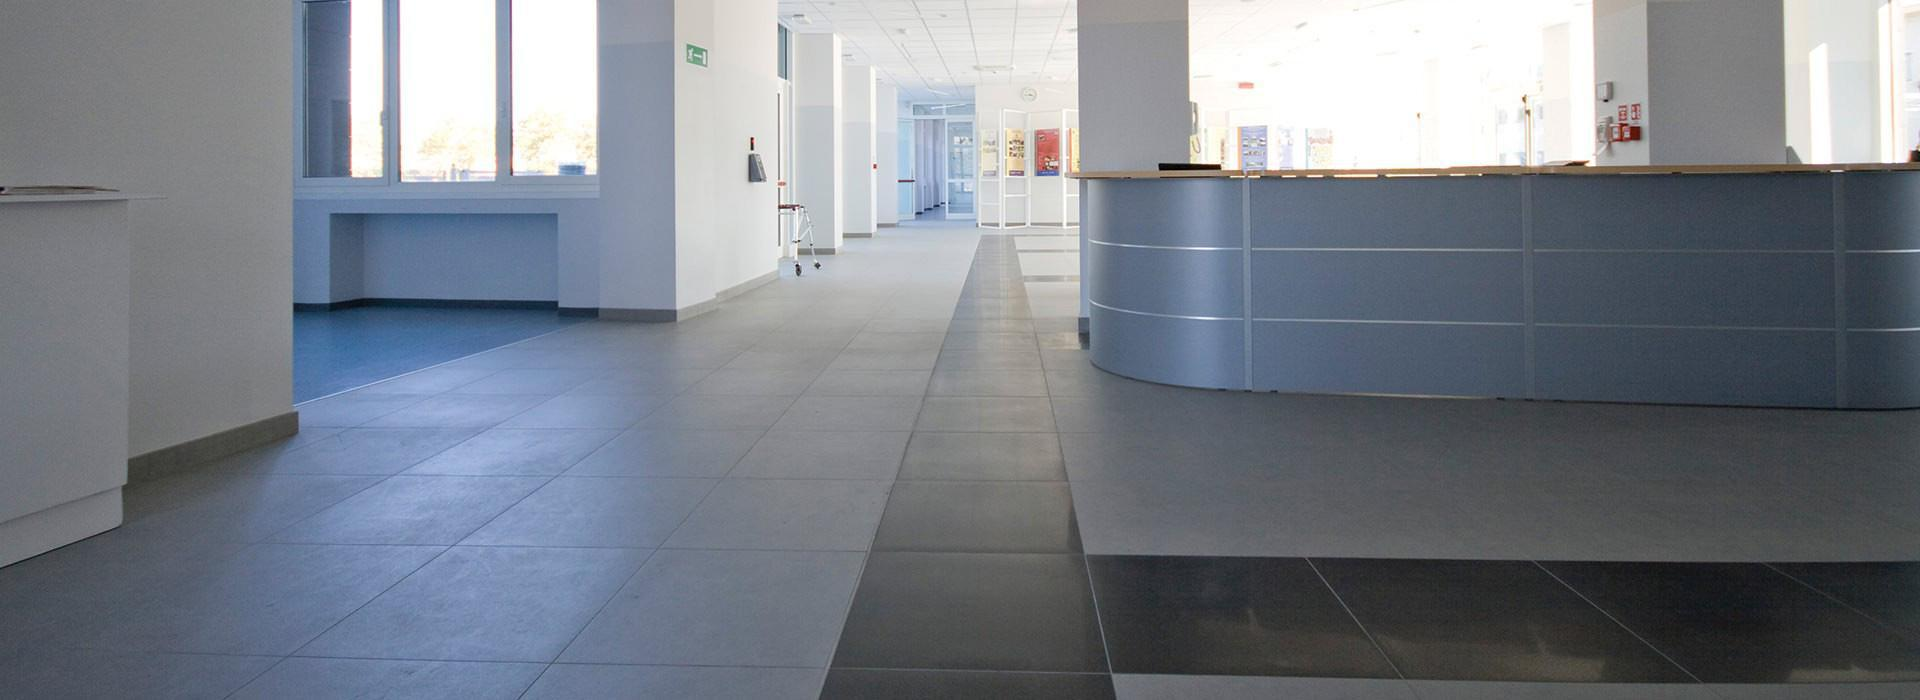 Antracite Rocce, black concrete effect porcelain tiles